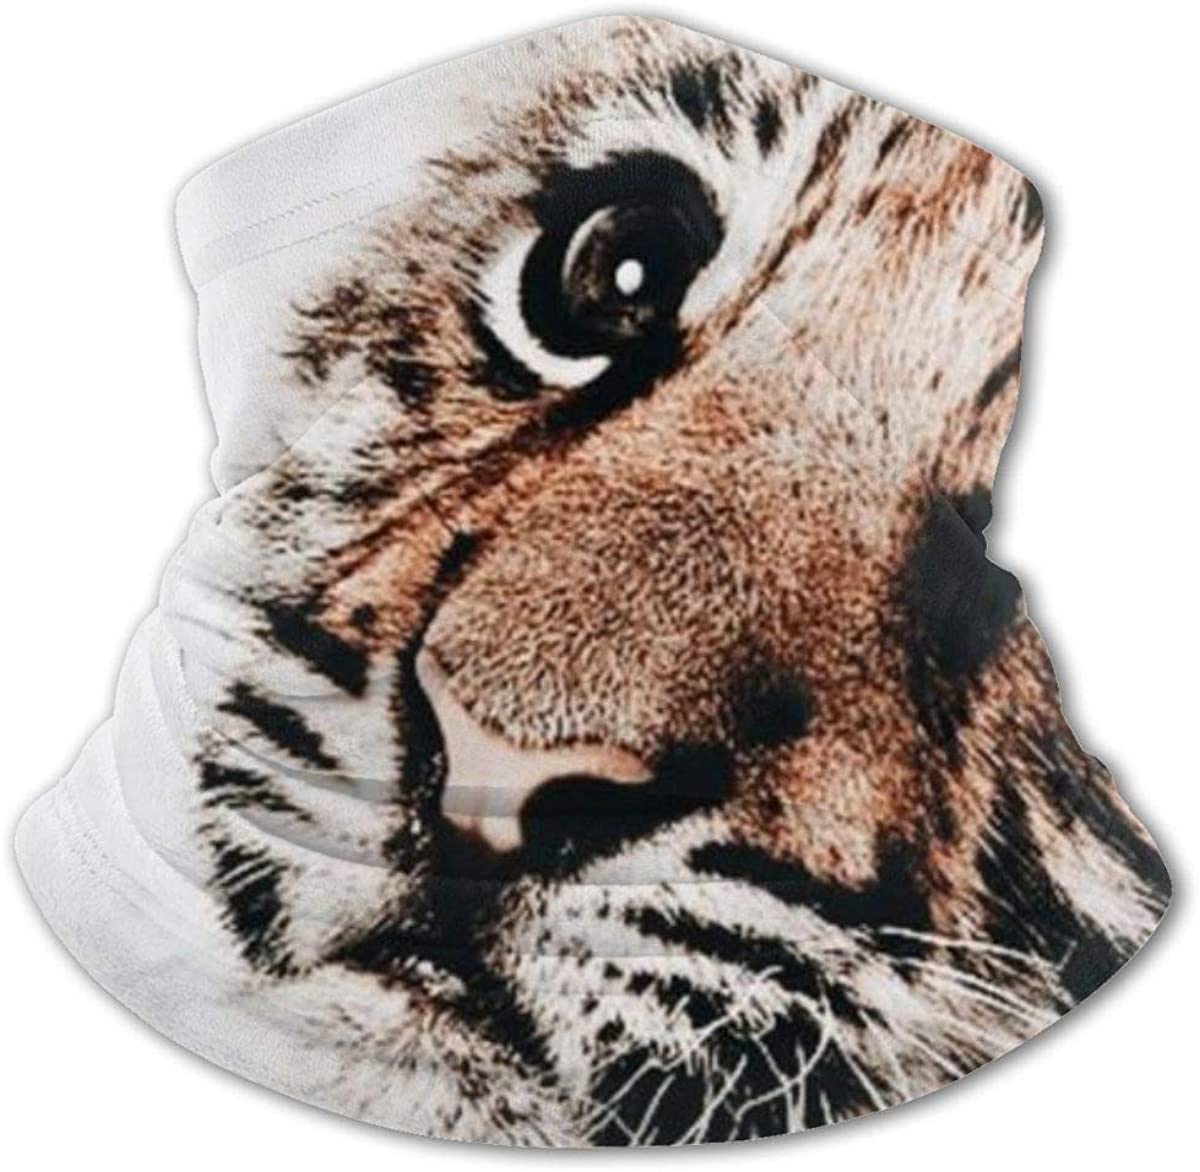 Baby Tiger Headwear For Girls And Boys, Head Wrap, Neck Gaiter, Headband, Tenn Fishing Mask, Magic Scarf, Tube Mask, Face Bandana Mask For Camping Running Cycling